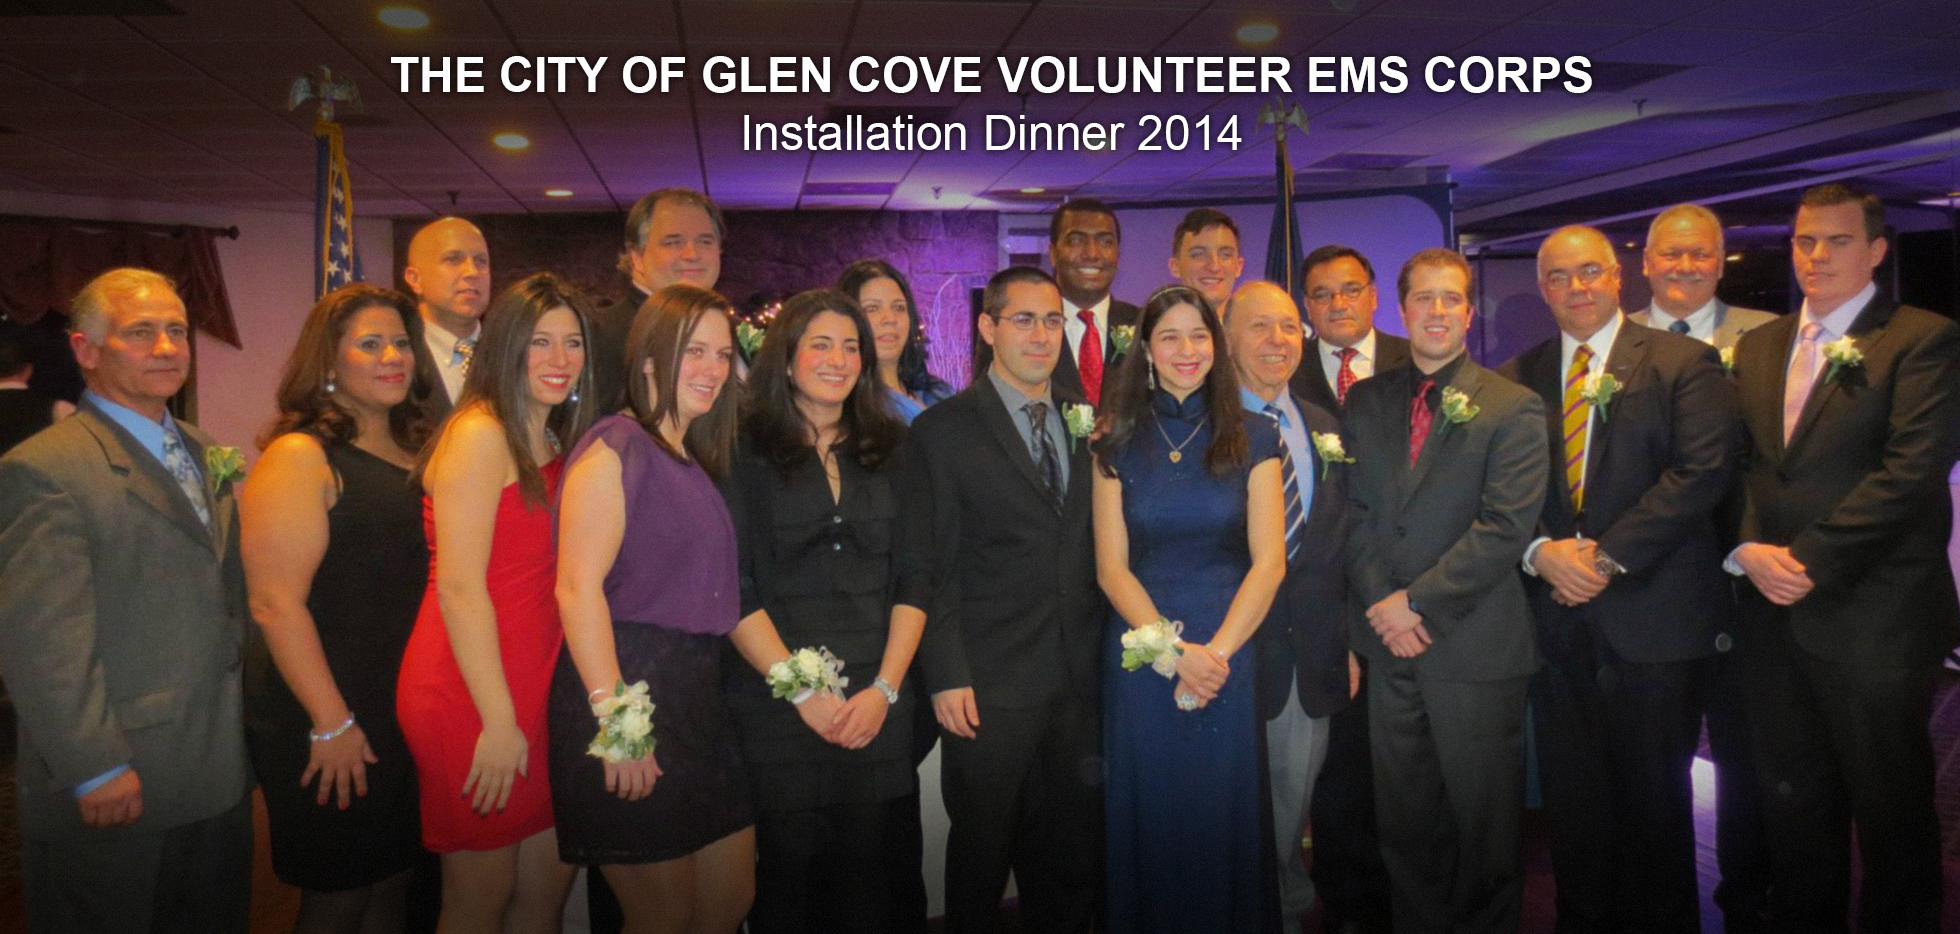 Members, Officers, and Trustees attend the Glen Cove Volunteer EMS Corps Installation Dinner January 18, 2014.